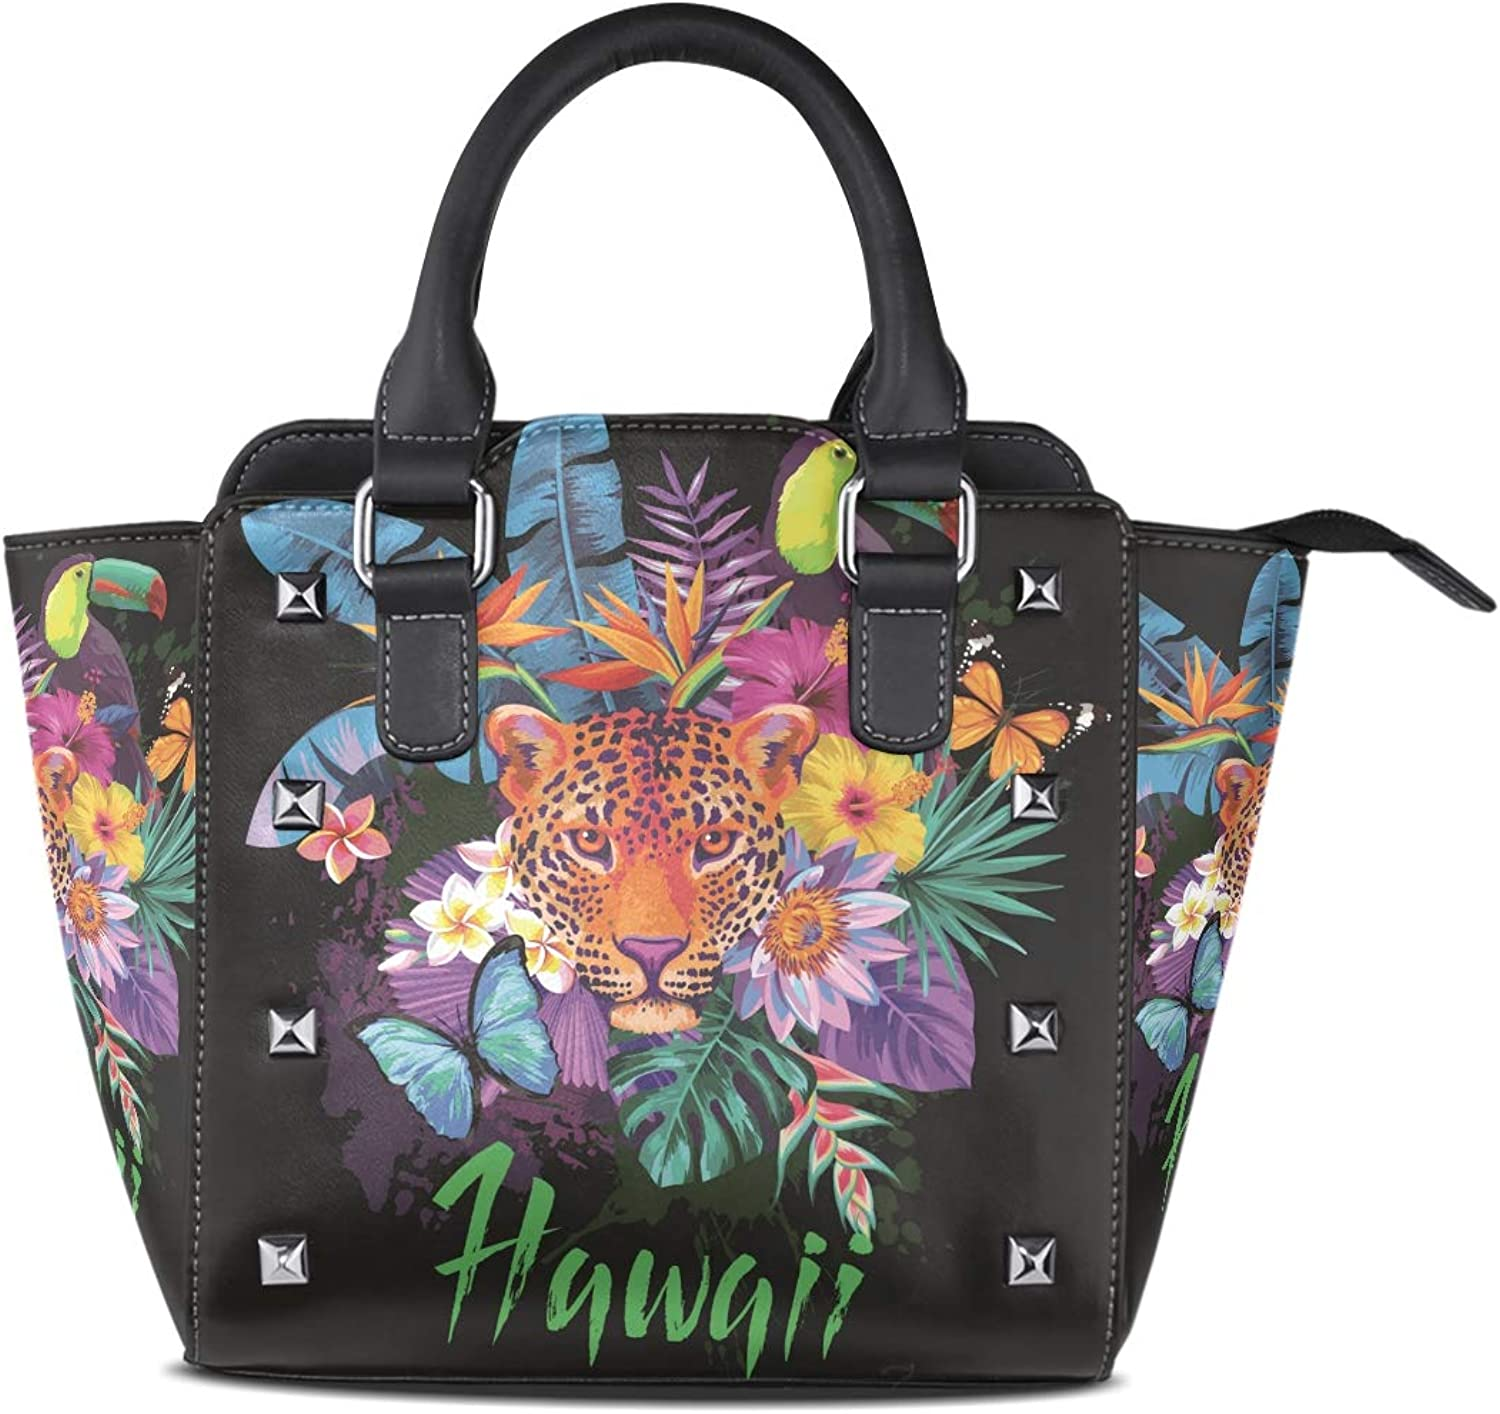 Women's Handbags Tropical Tiger Animals Floral Flowers Tote